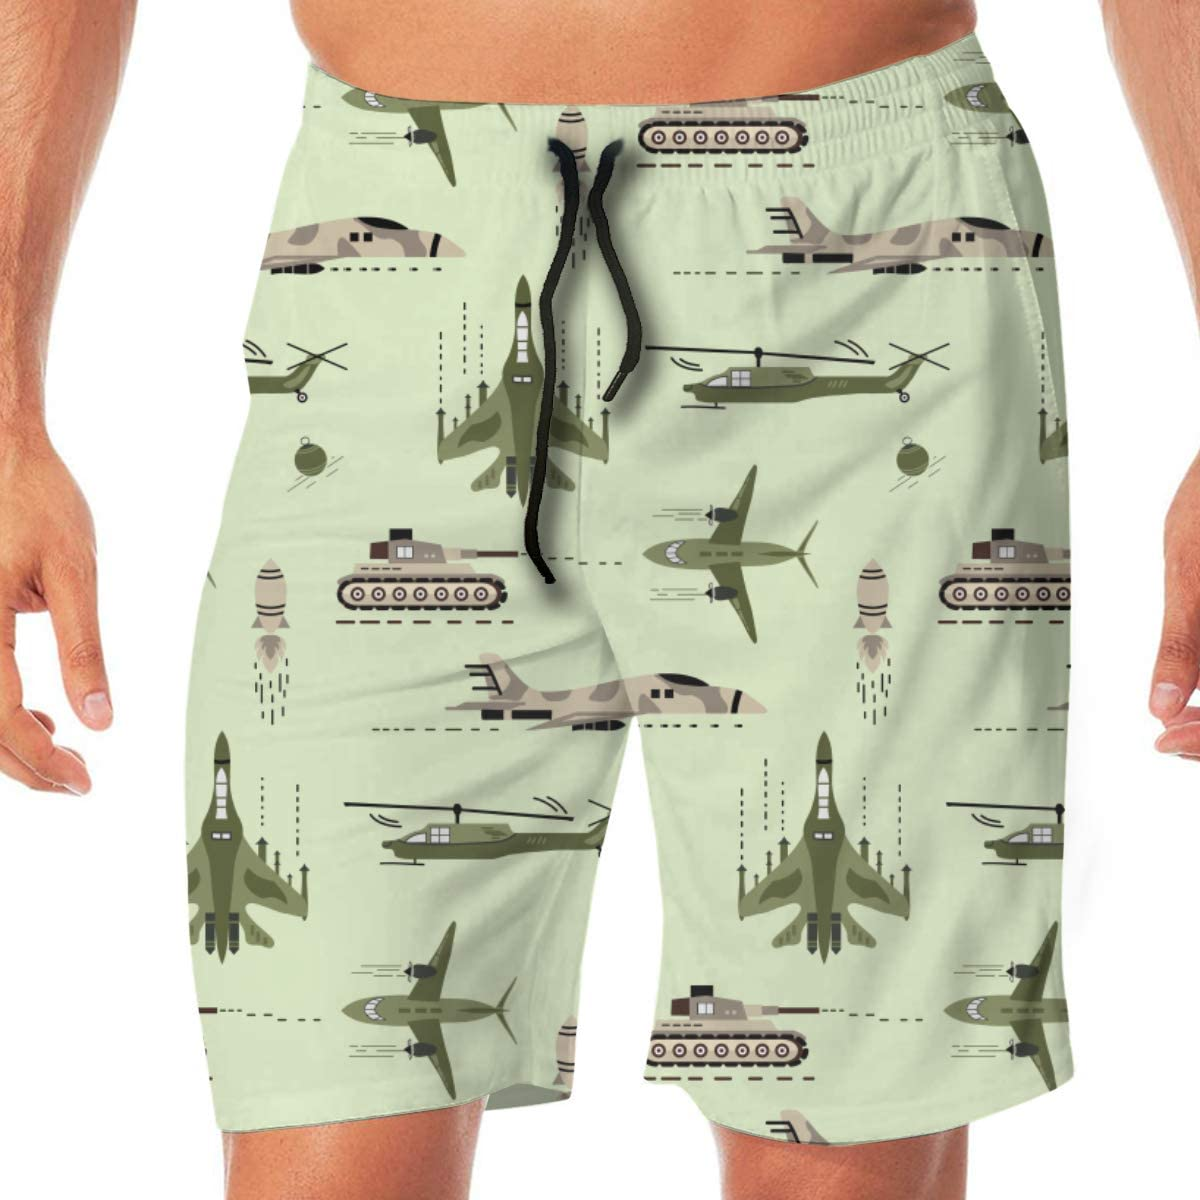 Fighter Jet Plane Icons Mens Swim Shorts Quick Funny Ranking TOP4 Dry Special price for a limited time Trunks